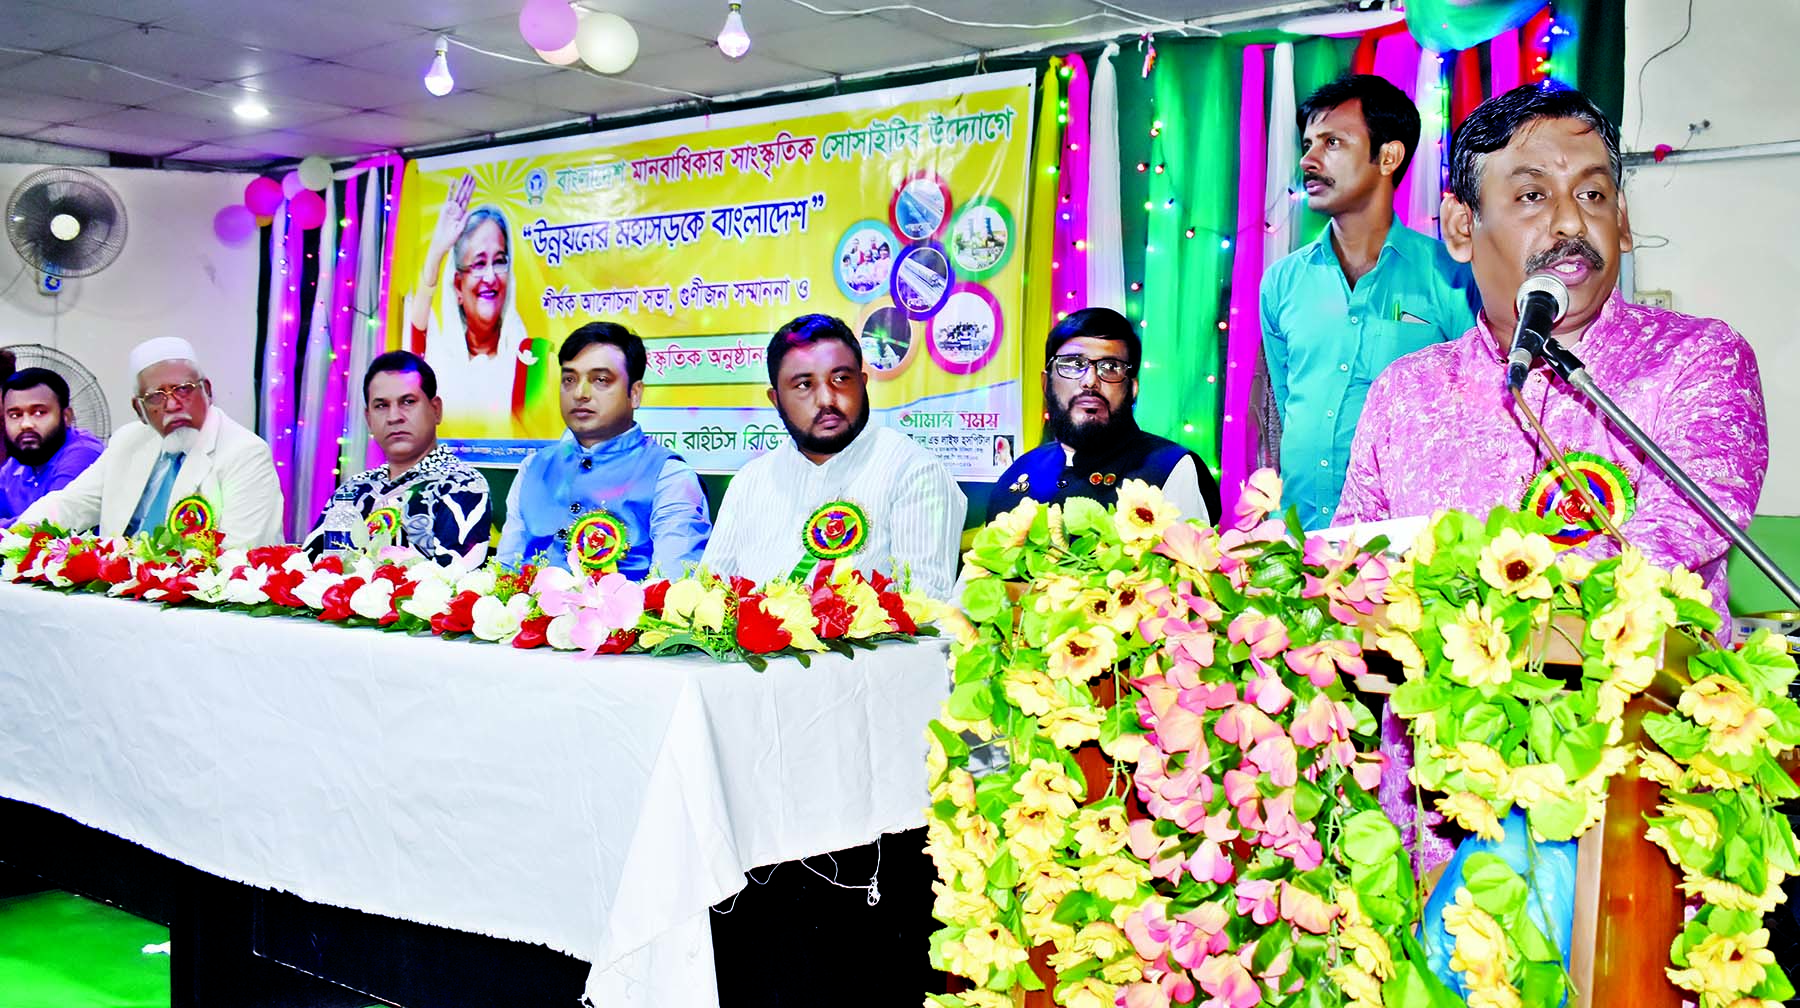 President of Bangabandhu Gobeshana Parishad  Lion Gani Miah Babul speaking as  a key speaker at a discussion  on 'Bangladesh in the Highway of Development